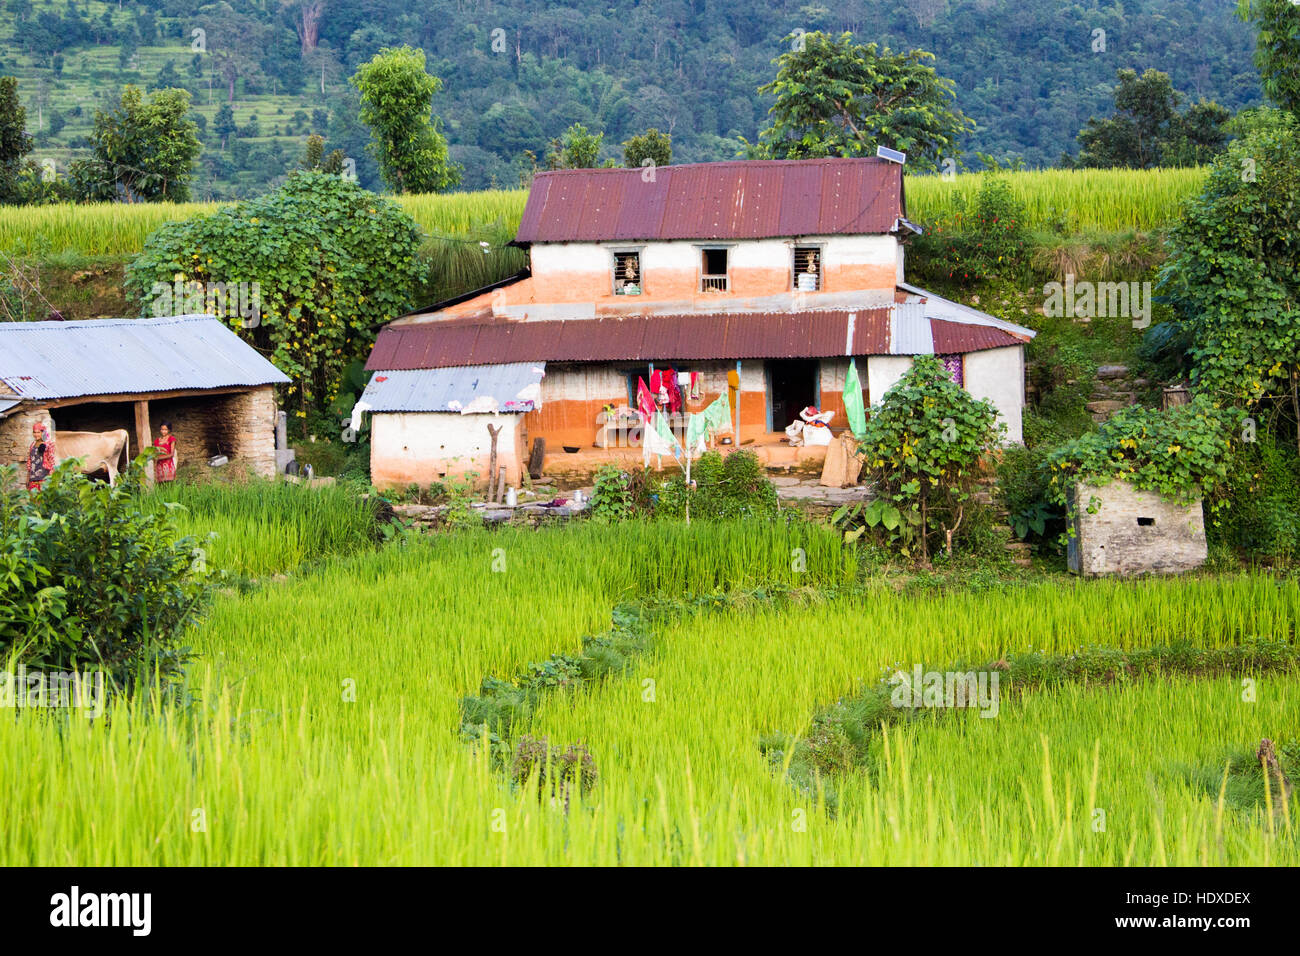 Local house in the hills near Pokhara, Nepal - Stock Image